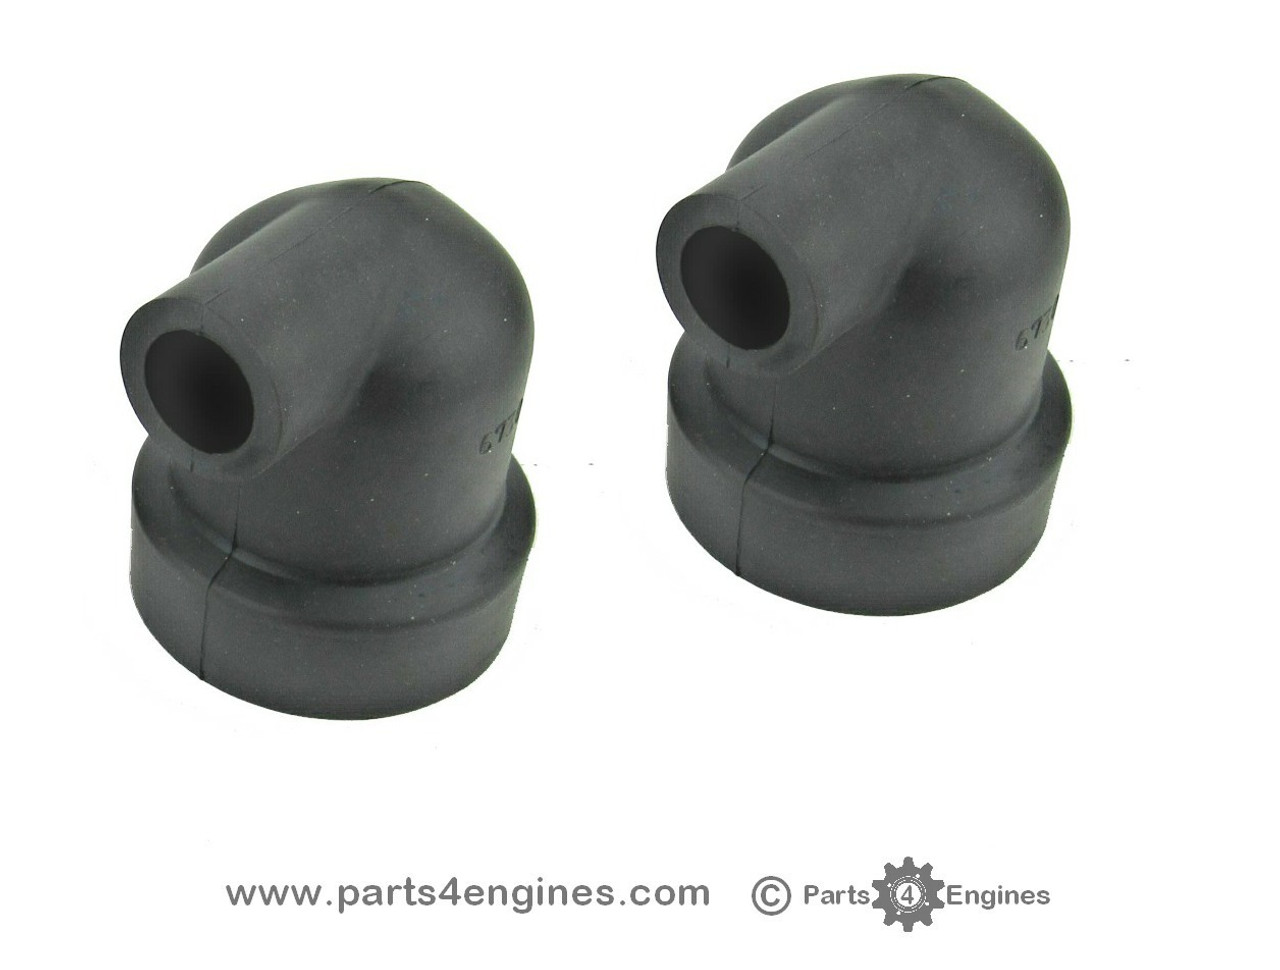 Volvo Penta MD2020 heat exchanger end caps - parts4engines.com